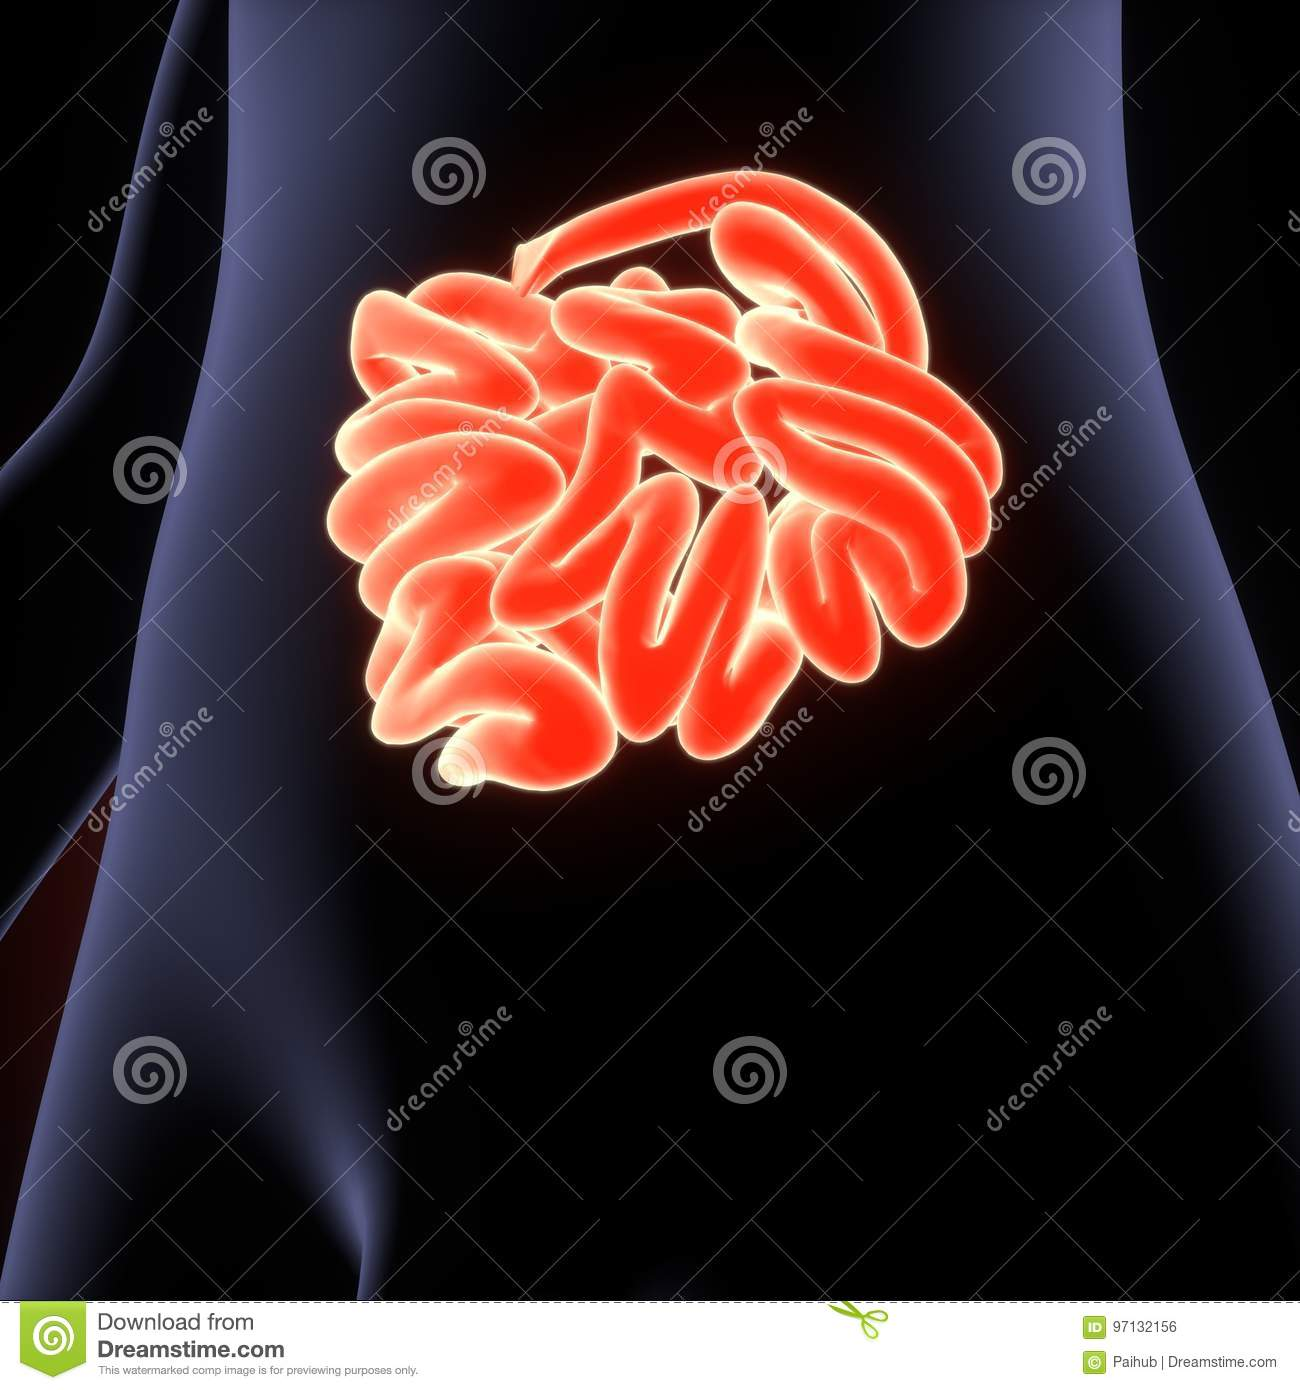 3D Illustration Of Human Digestive System Anatomy Stomach With Small ...